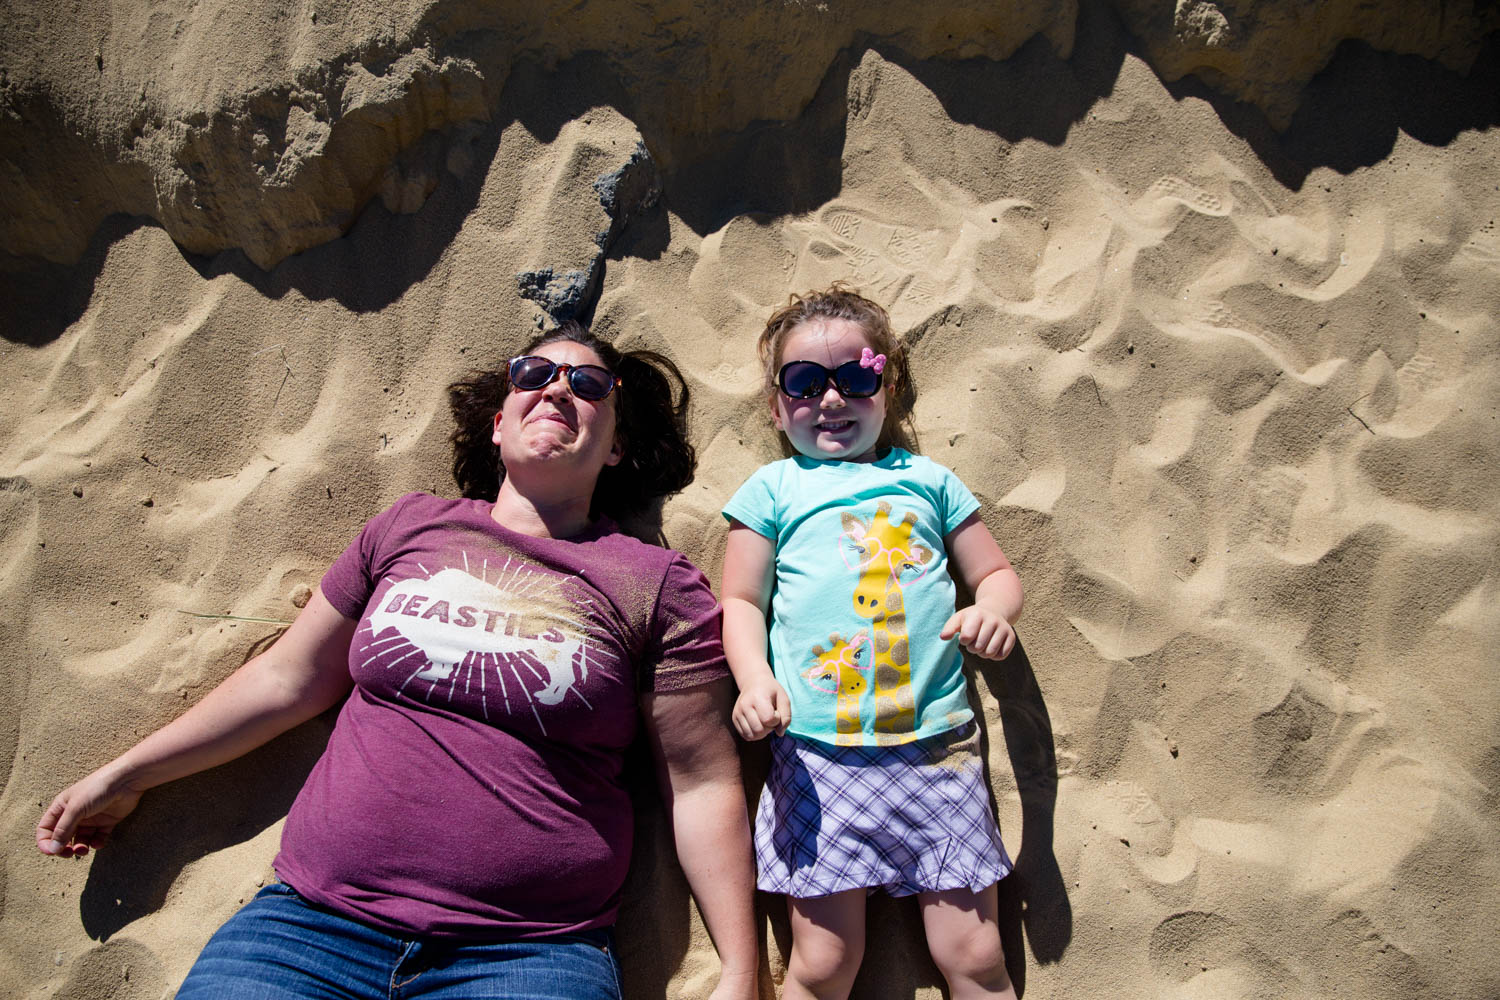 Mom and daughter laying down in the sand as mom gets sand poured over her. Both girls laughing. Camelsback Trailhead Boise, ID.